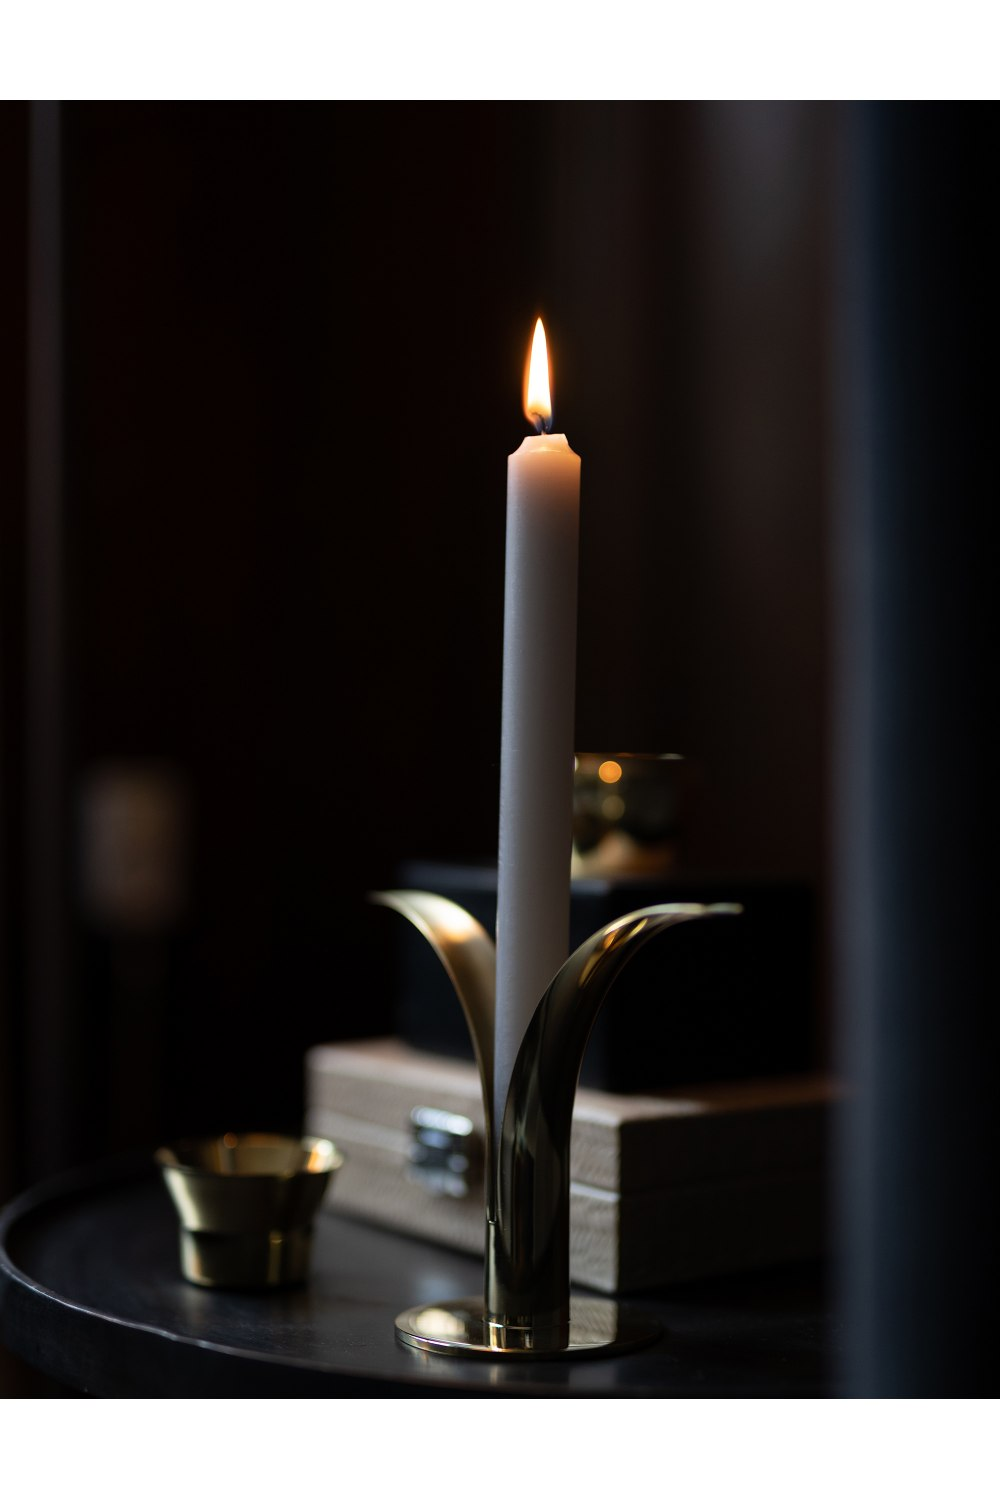 The Lily Candlestick